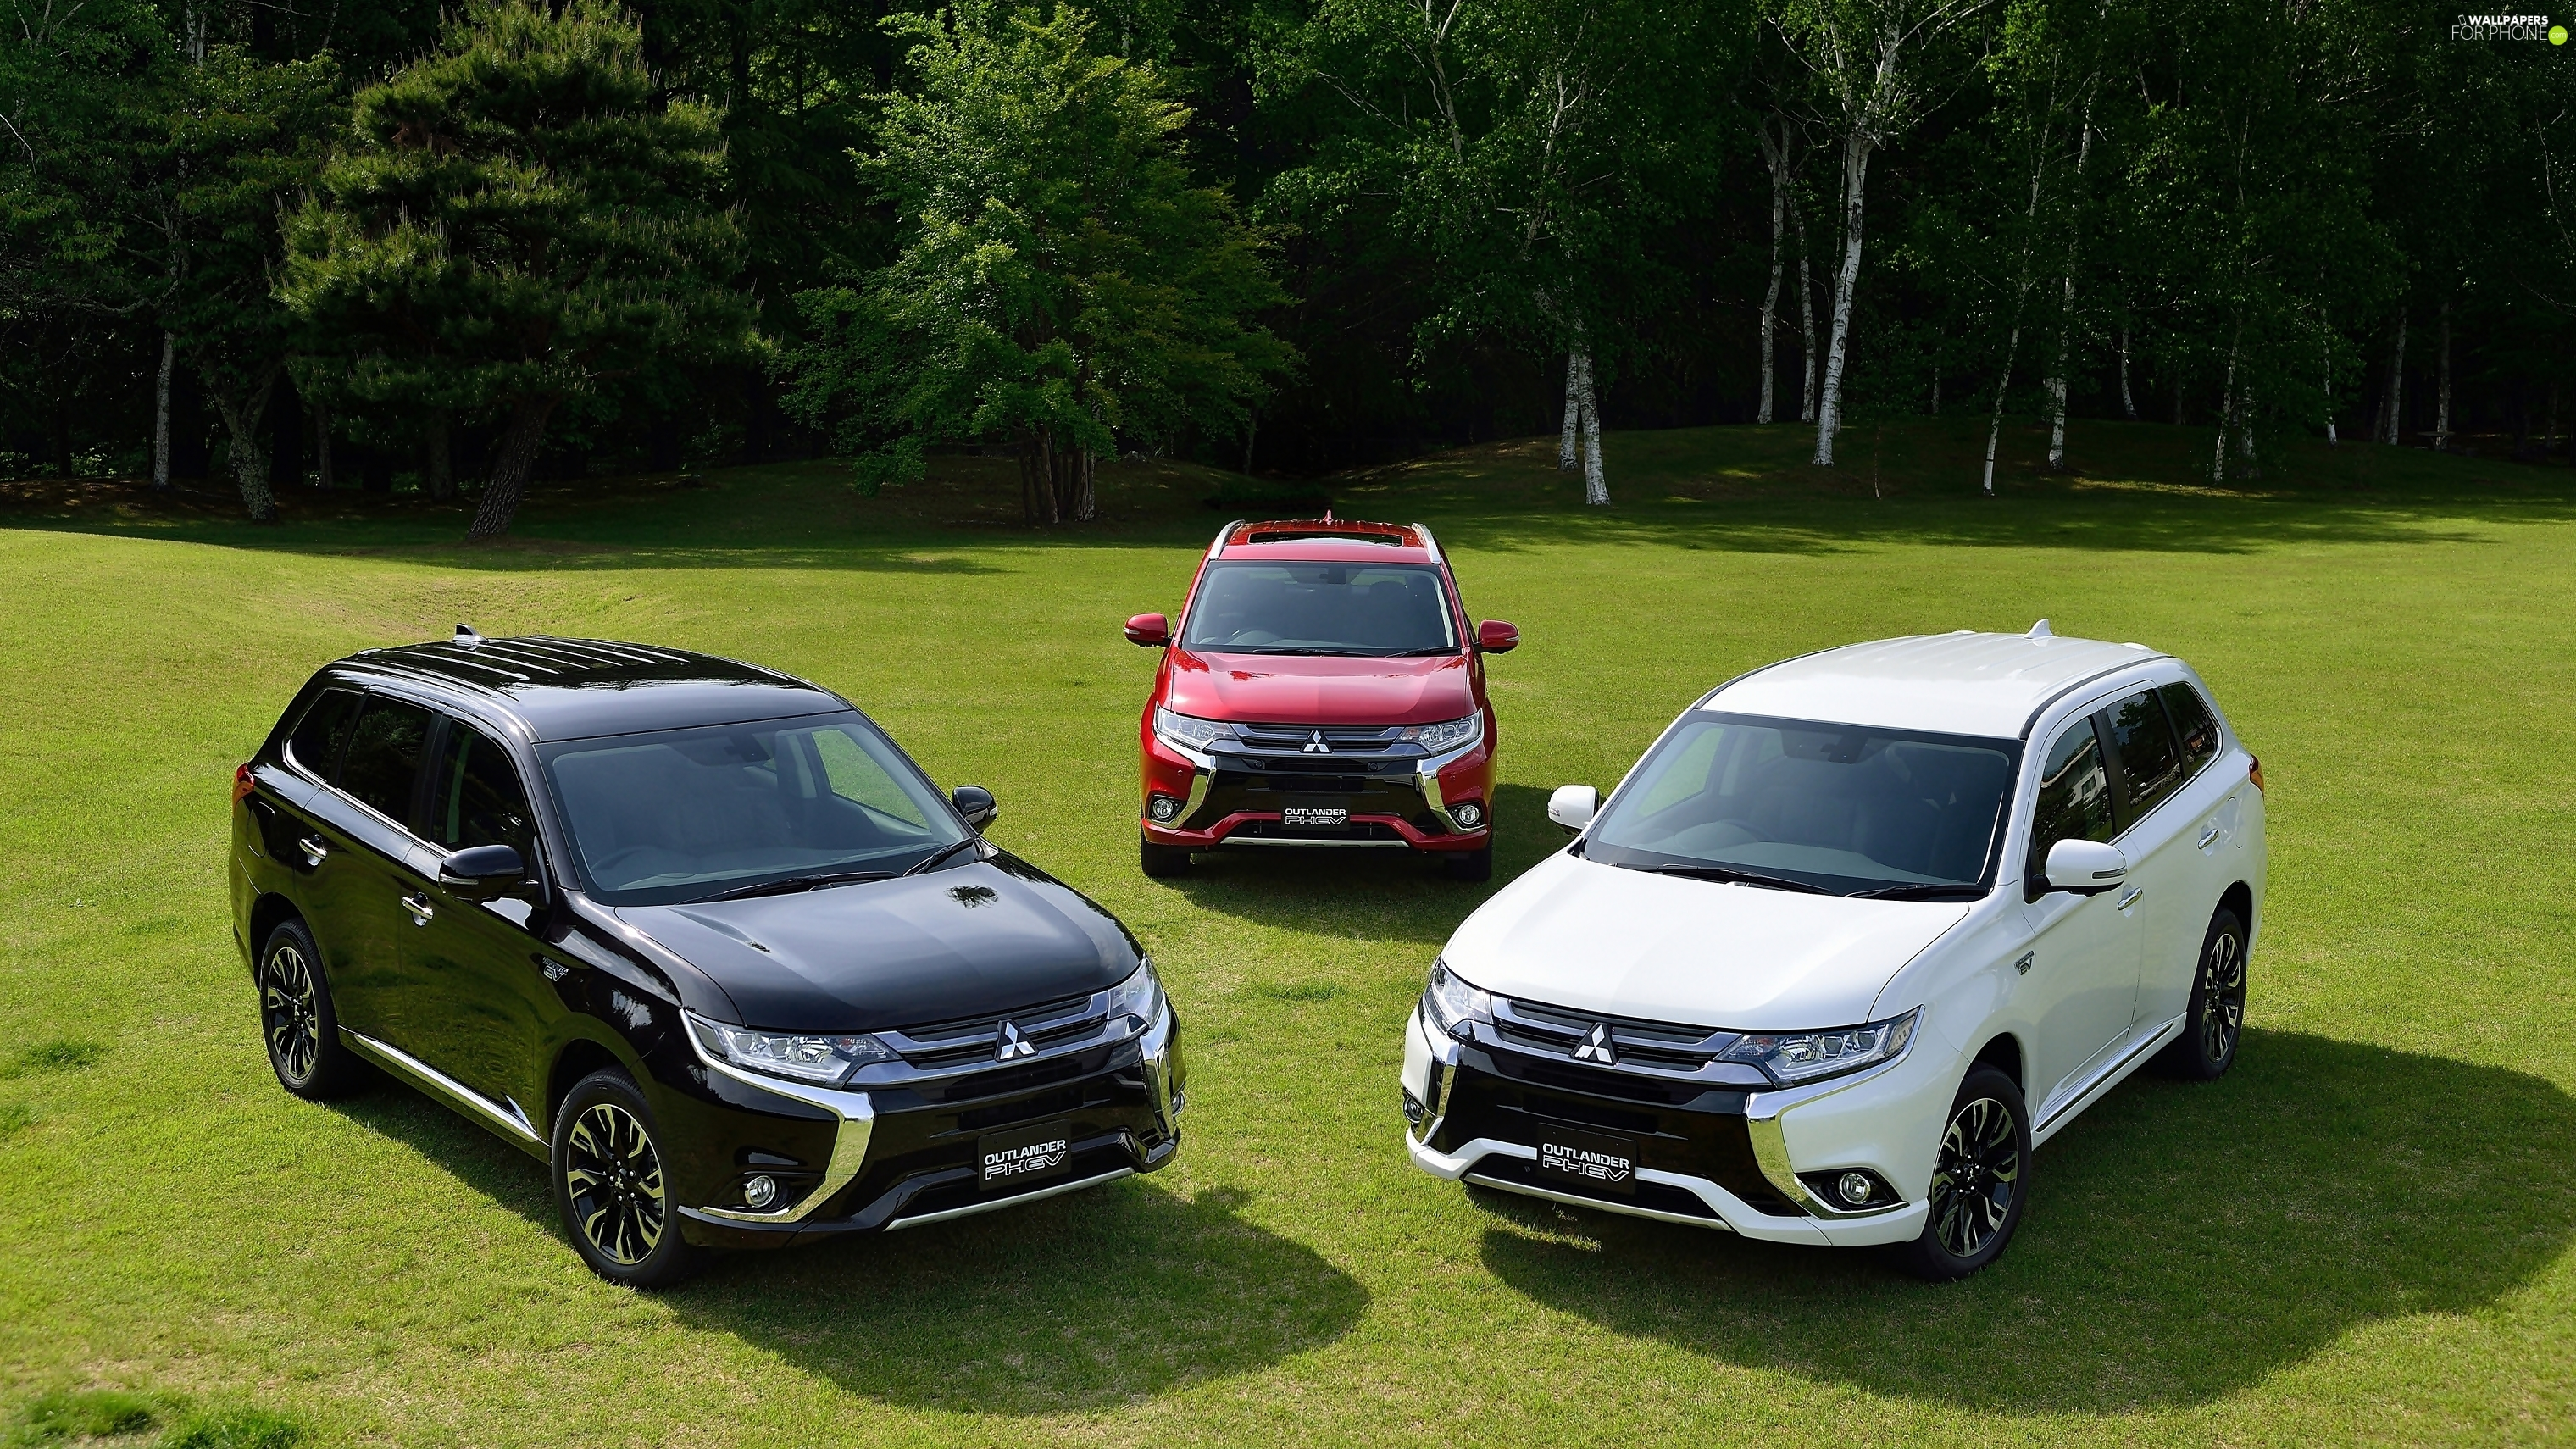 Meadow, forest, Mitsubishi Outlander PHEV, 2016, Three